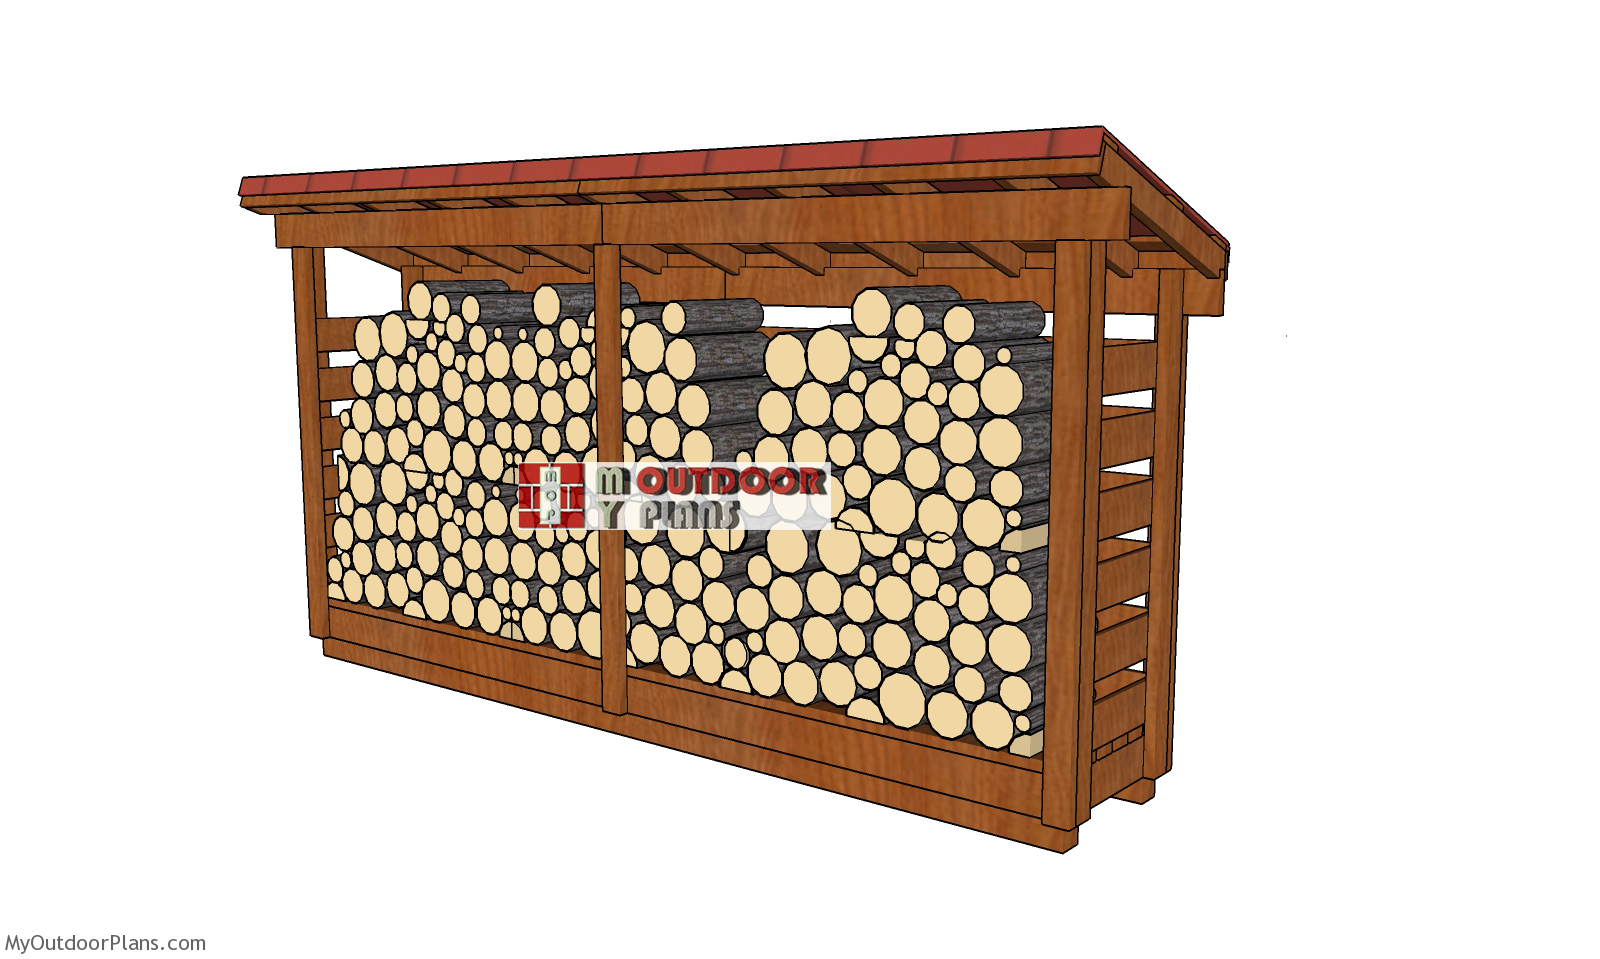 1 Cord 2x12 Firewood Shed Plans